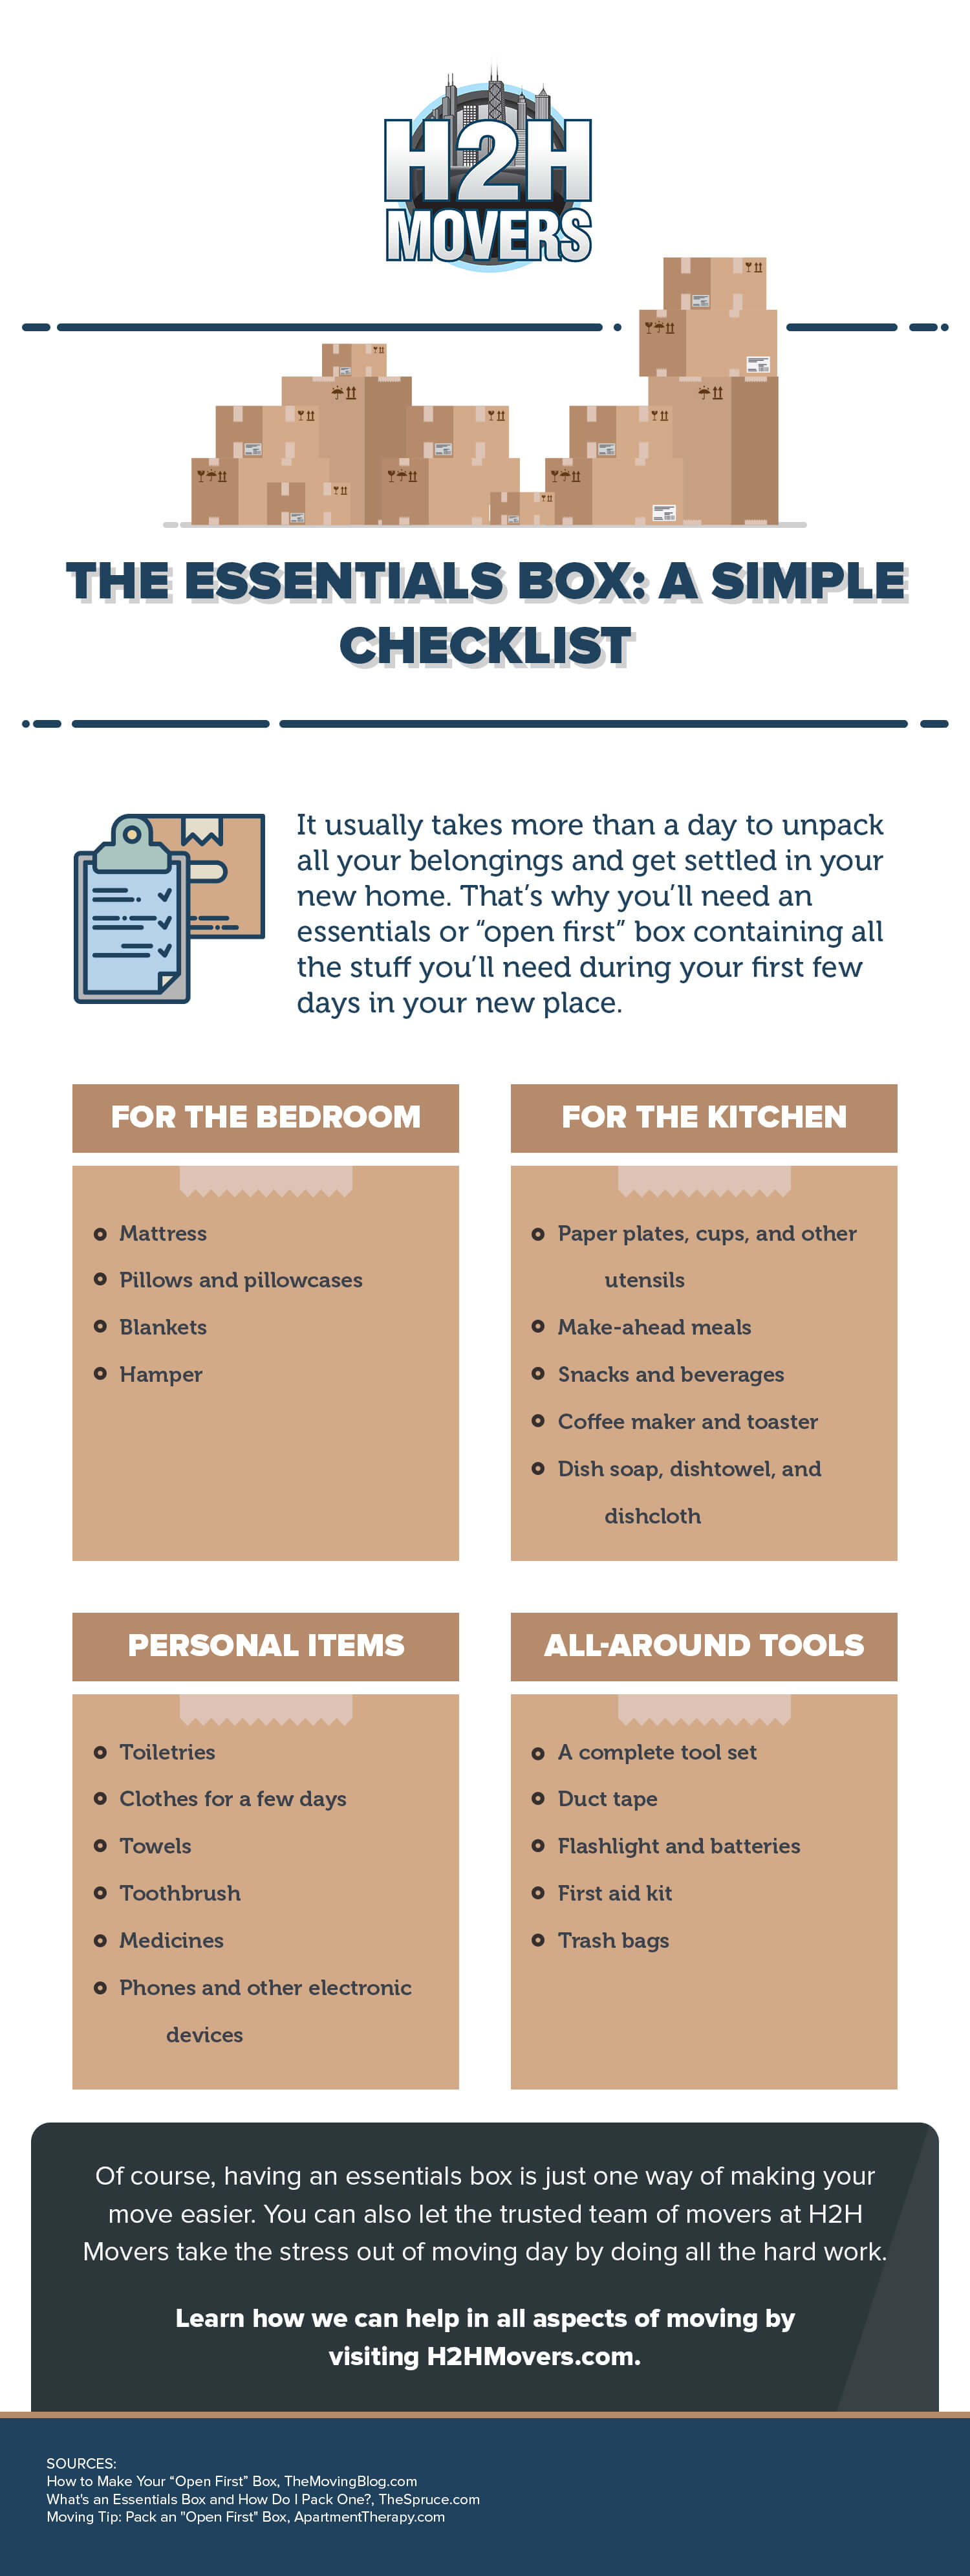 Professional Movers Provide a Handy Checklist for the Essentials Box